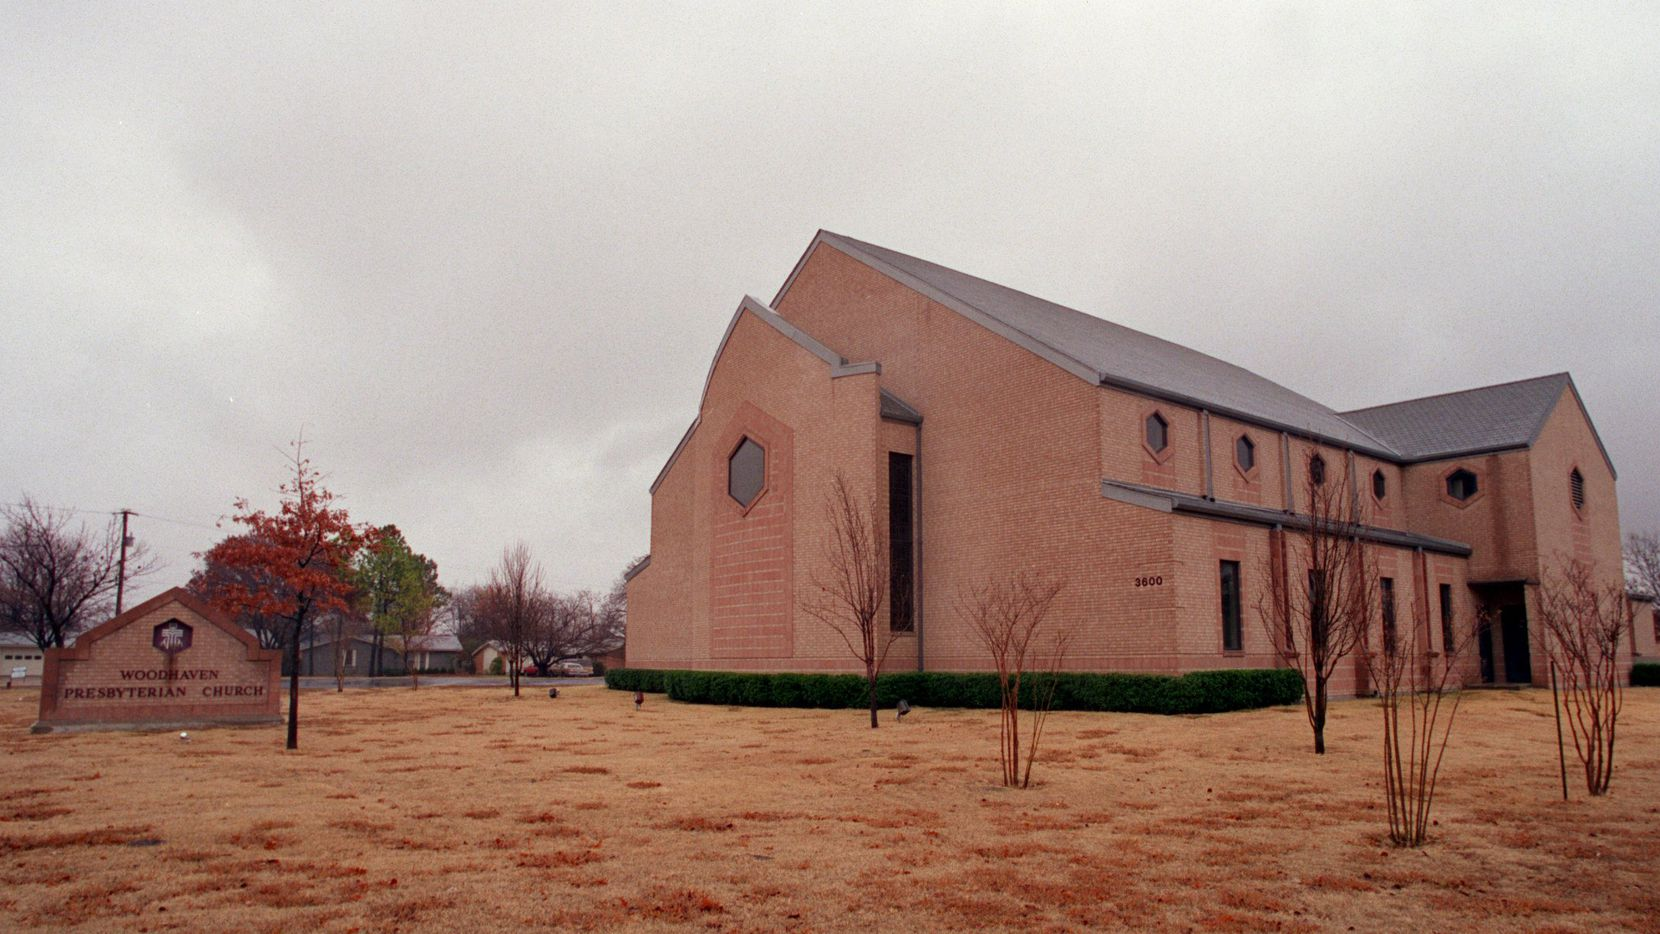 Woodhaven Presbyterian Church in Irving.